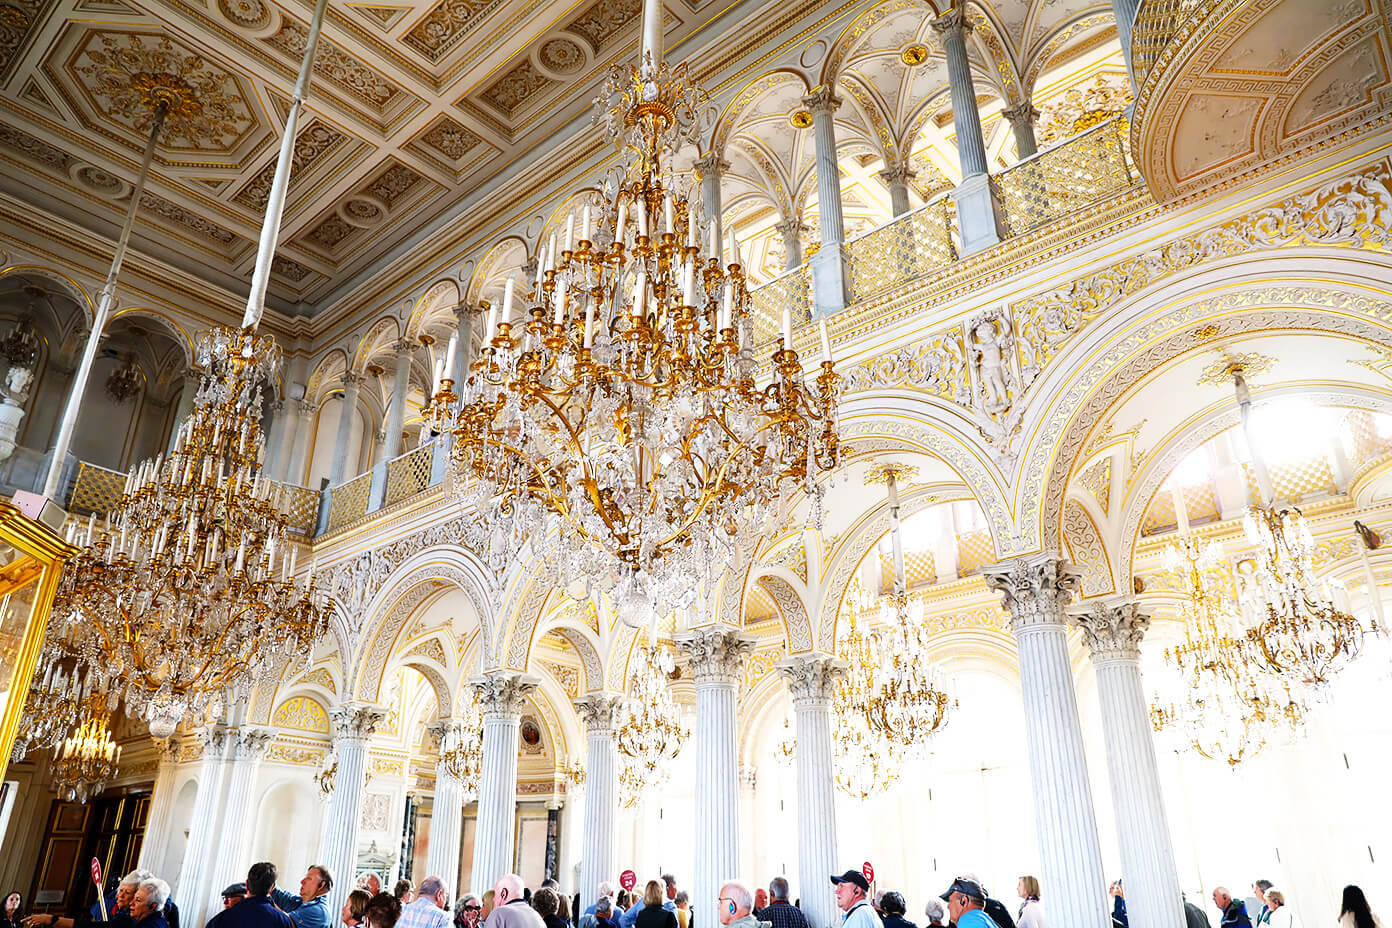 The Hermitage, St. Petersburg